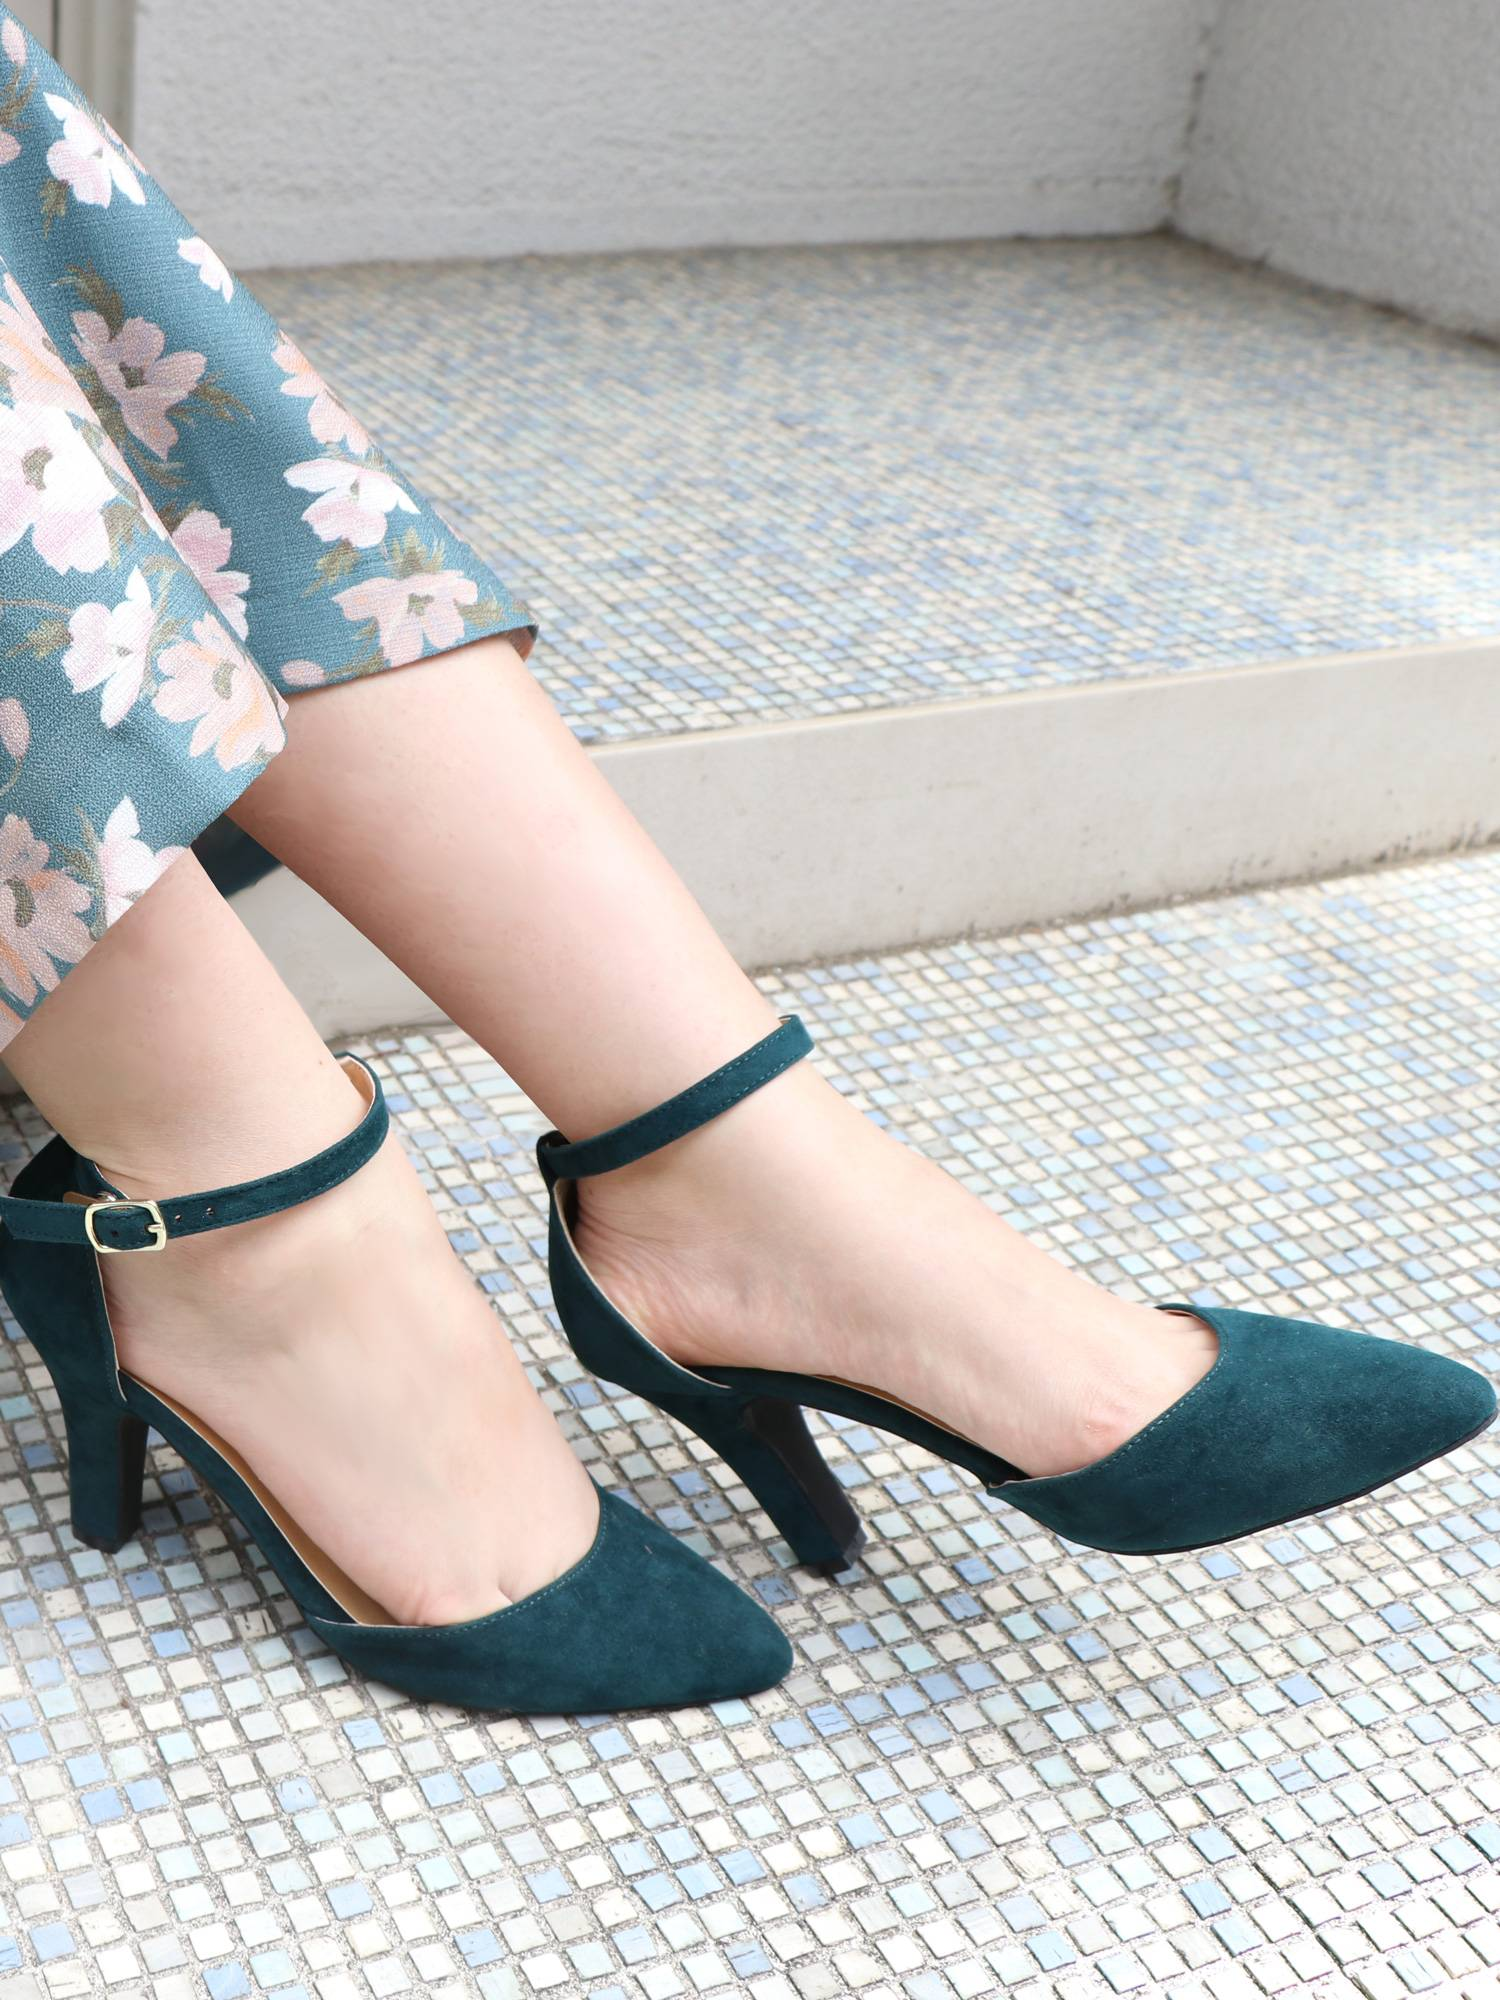 [Goods] LADY LIKE color pumps